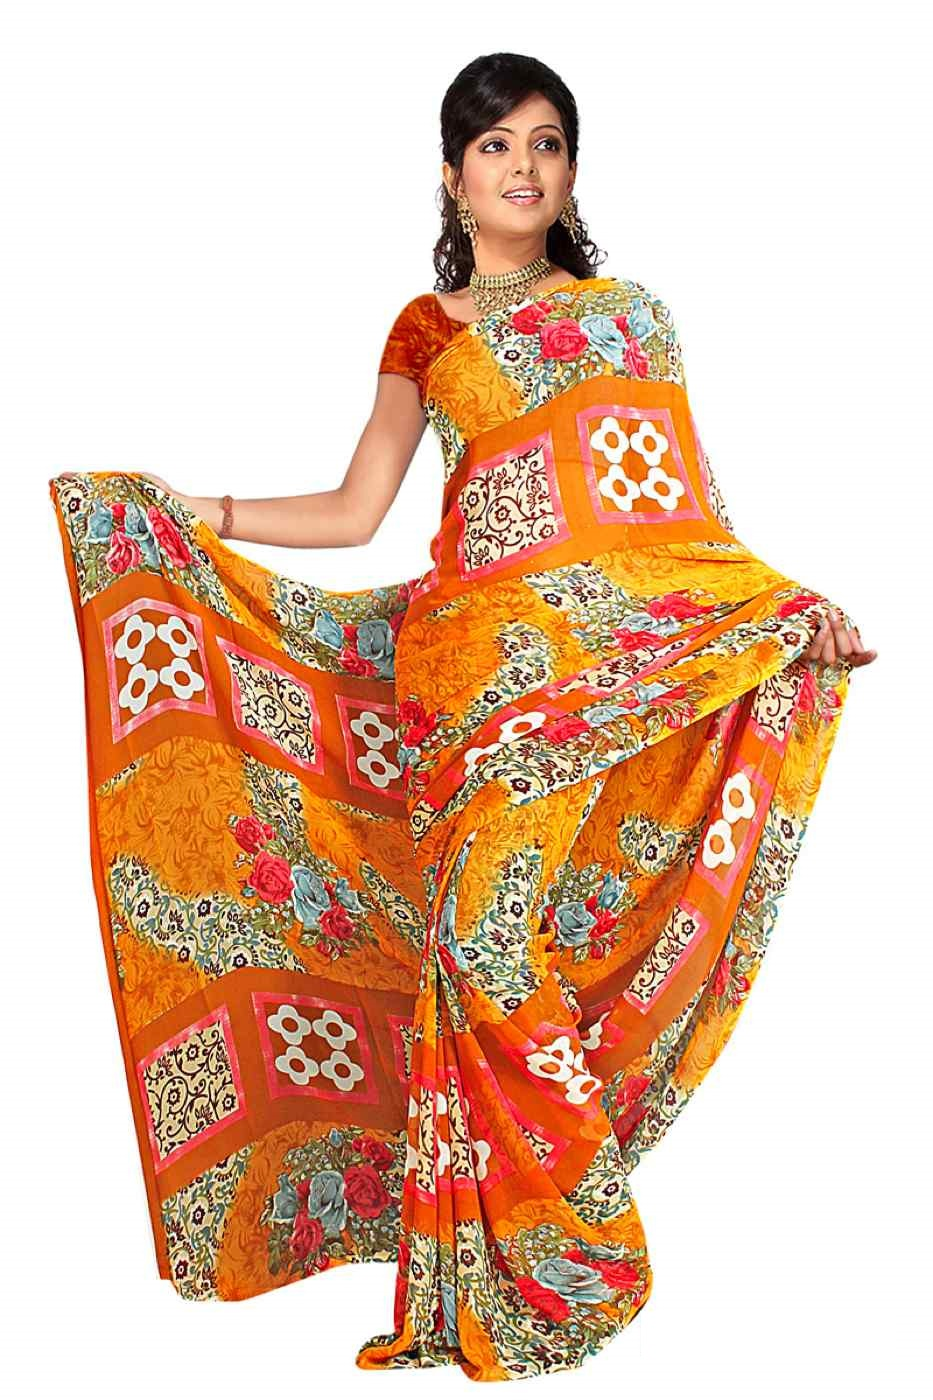 Indian Selections Bala Georgette Printed Casual Saree Sari Bellydance fabric at Sears.com